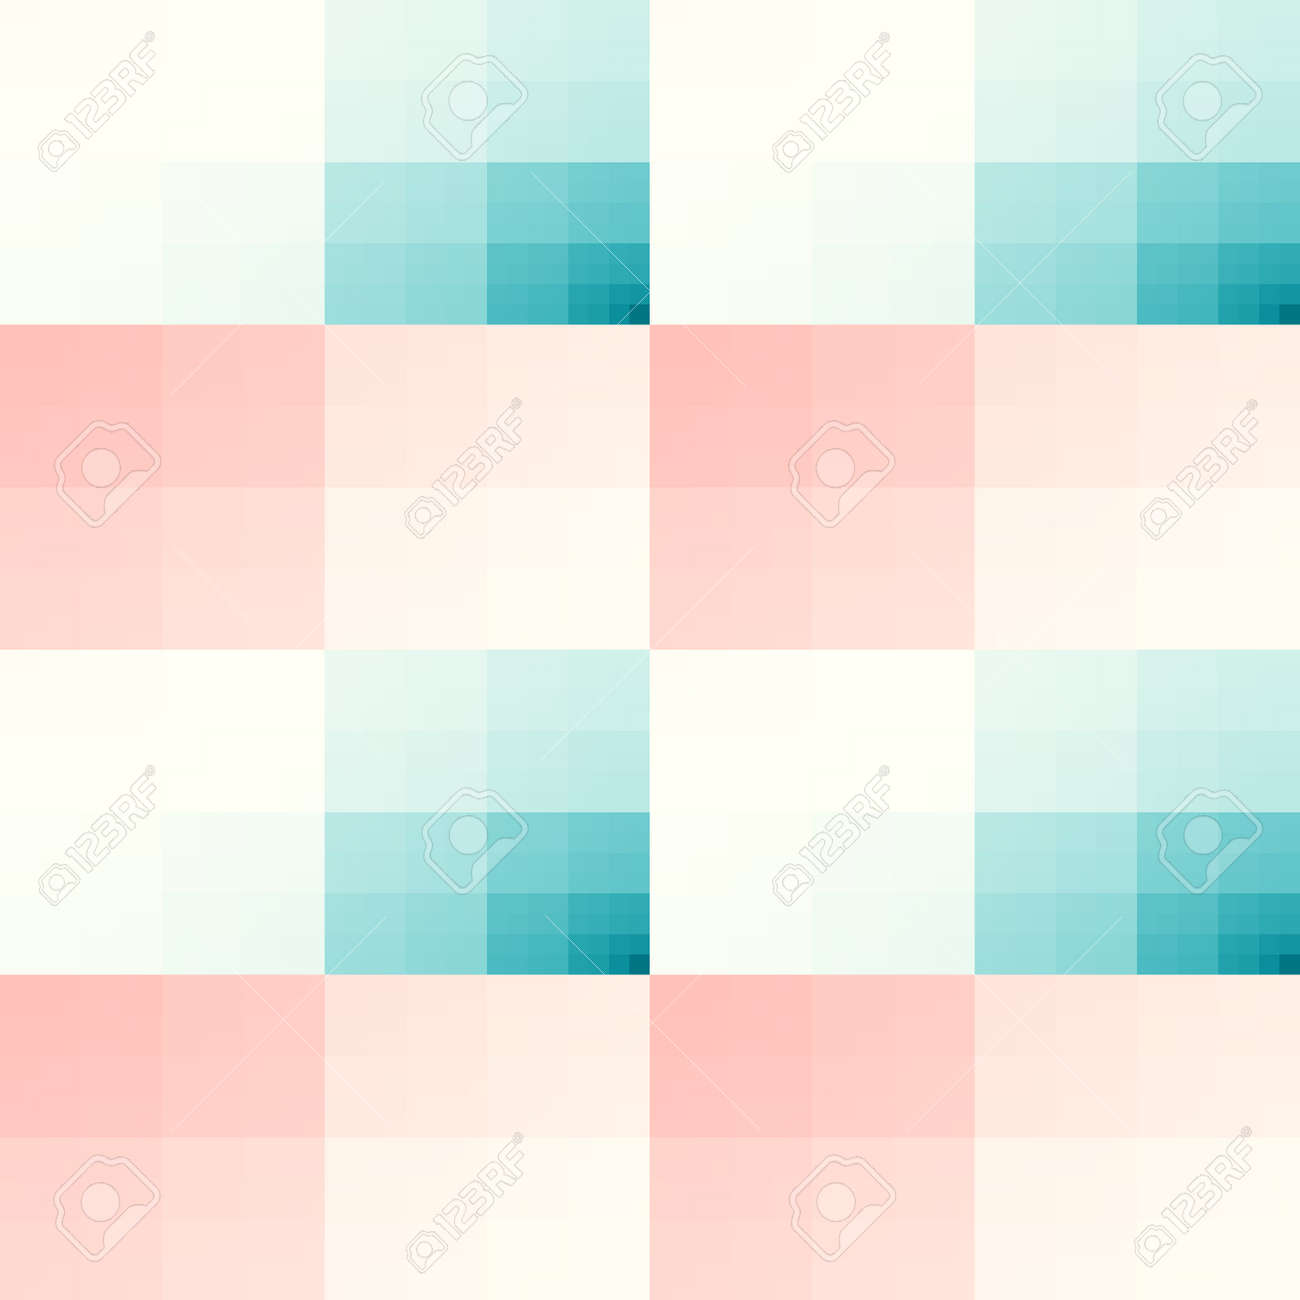 Seamless Texture With Teal And Pink Squares Pattern For Print